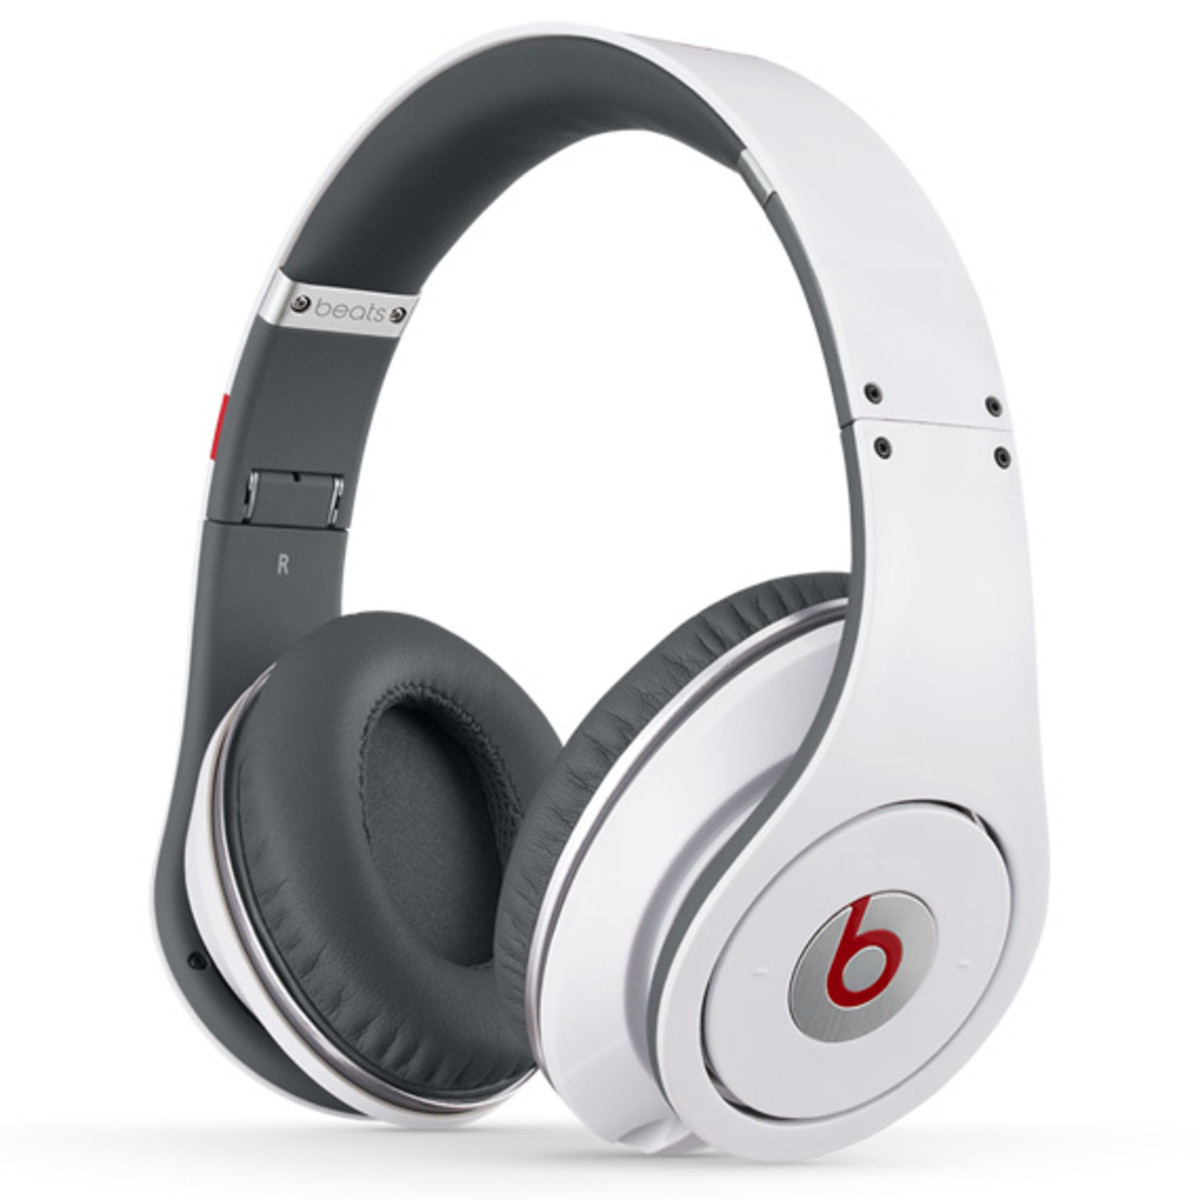 beats-by-dr-dre-studio-headphones-ekocycle-edition-william-coca-cola-04